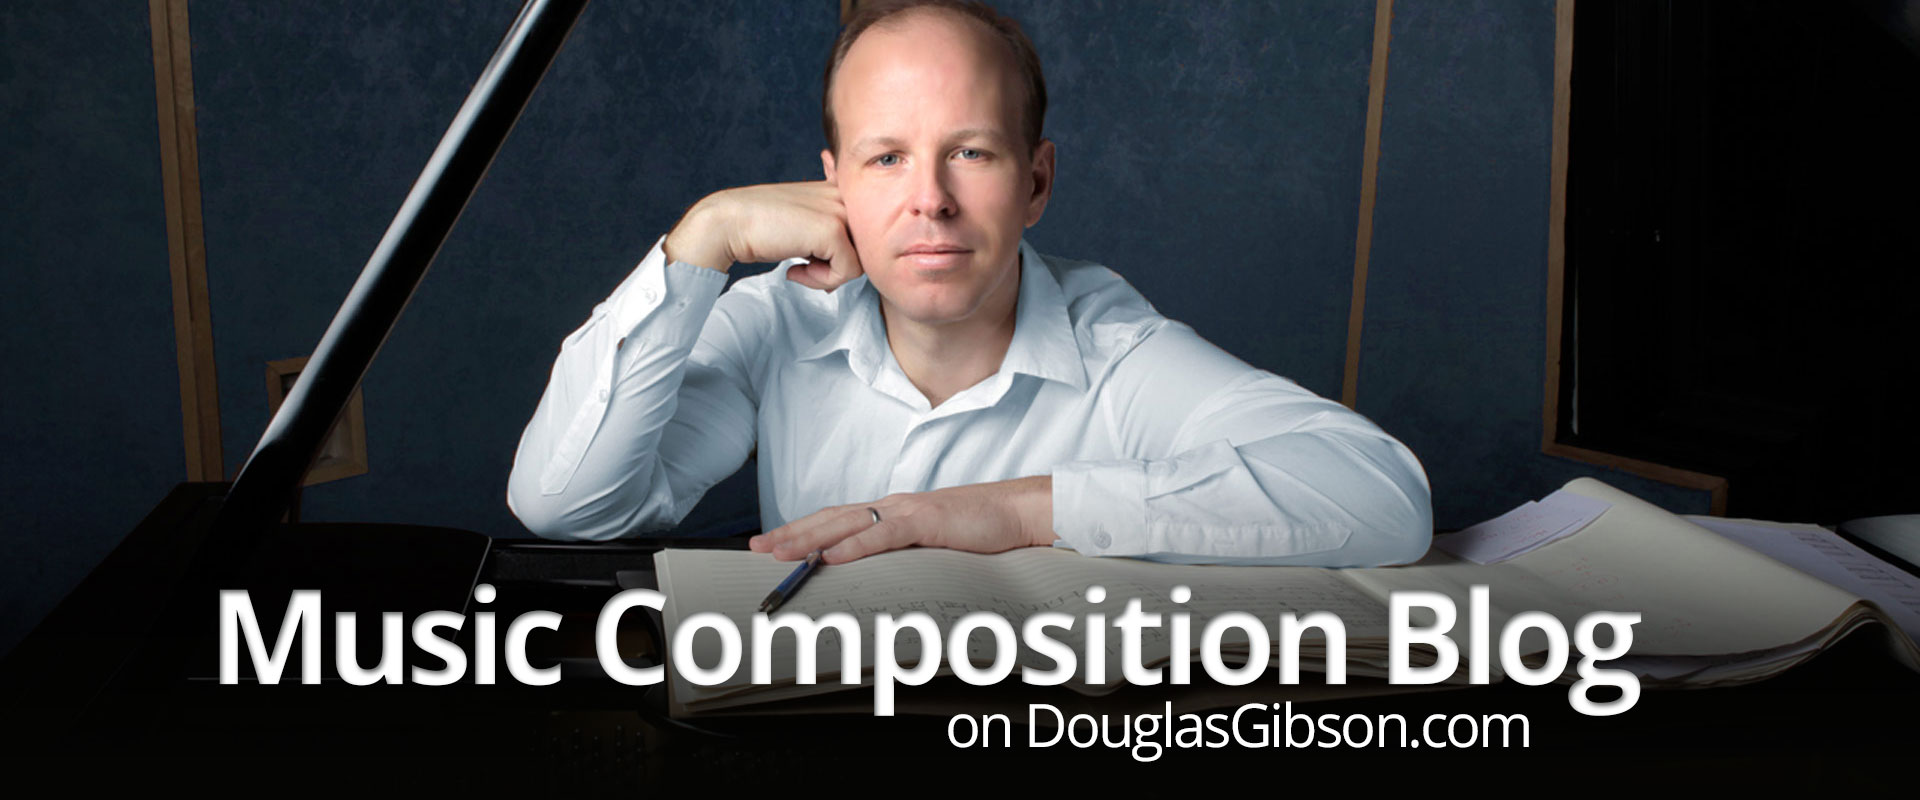 Music Composition Blog